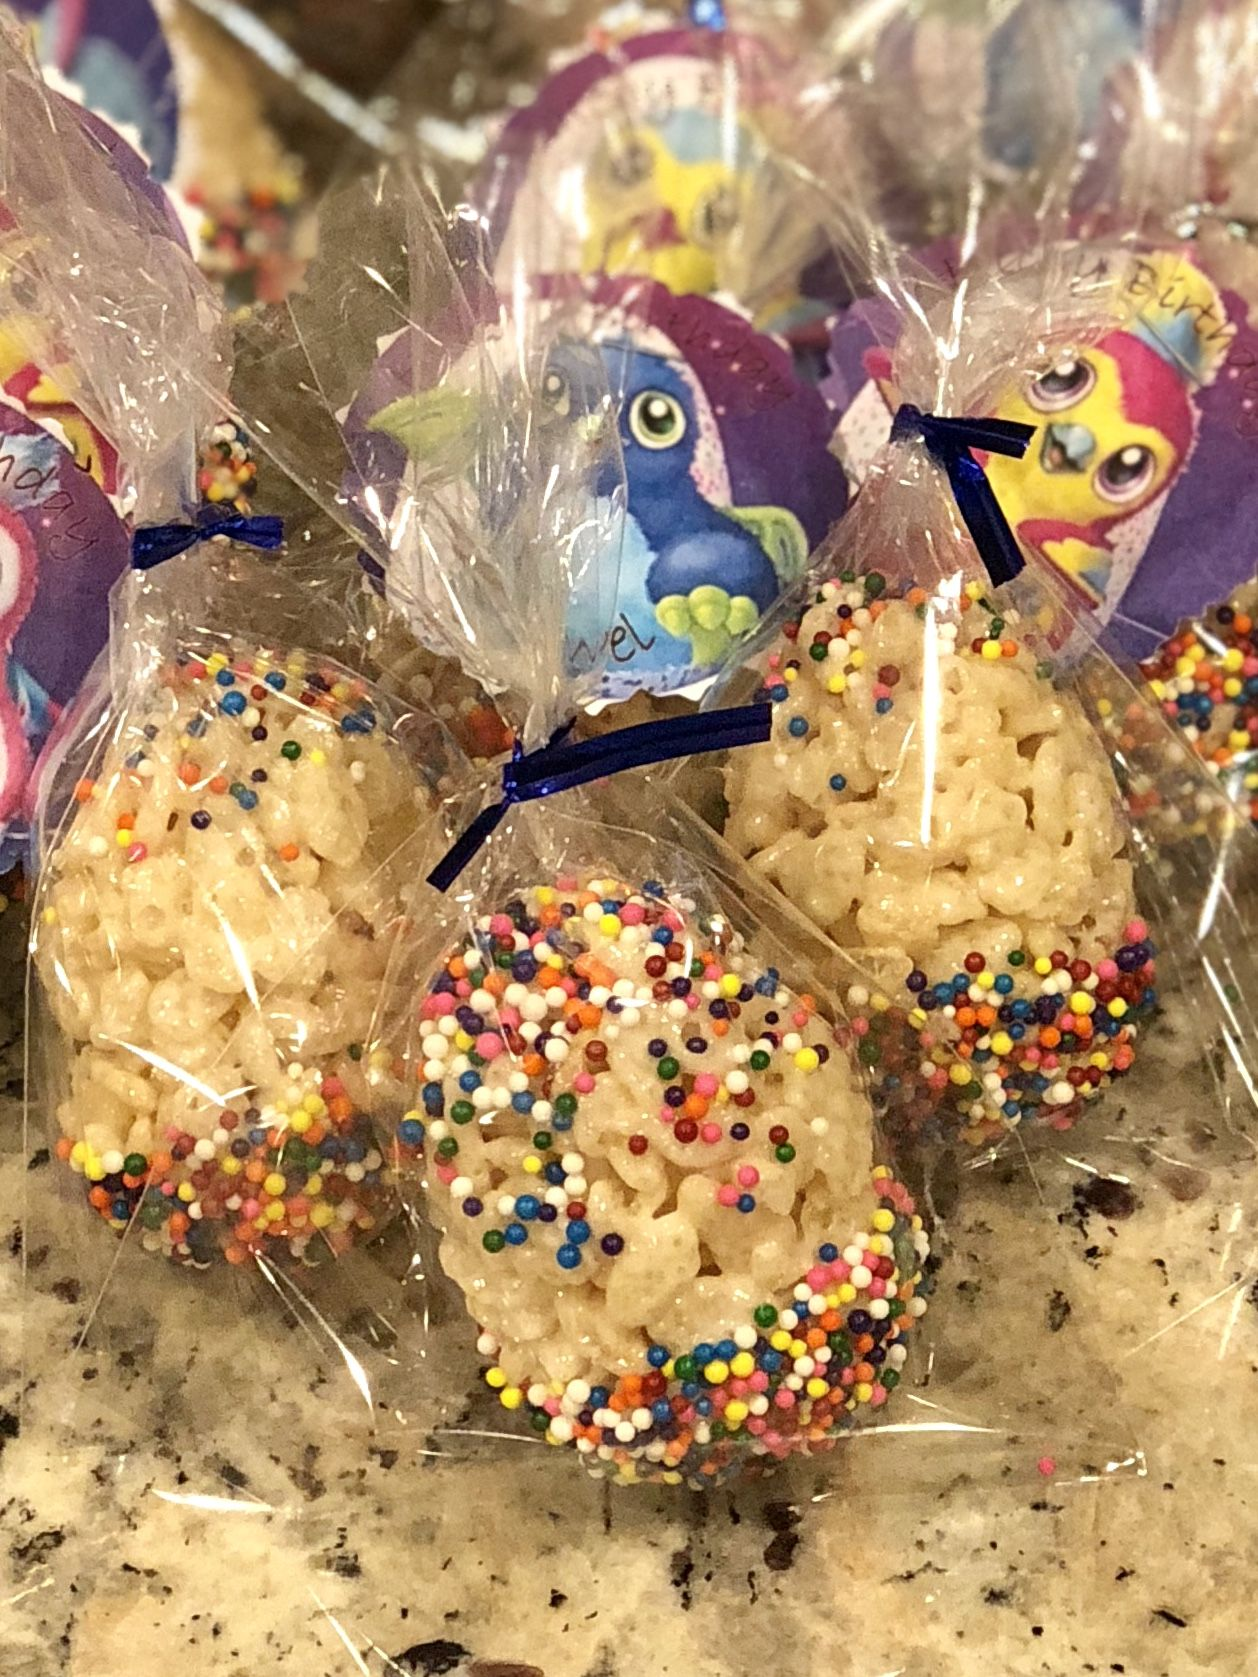 th birthday party ideas th rice krispies theme themes also pin by julie  michael letourneau on kids bday rh pinterest